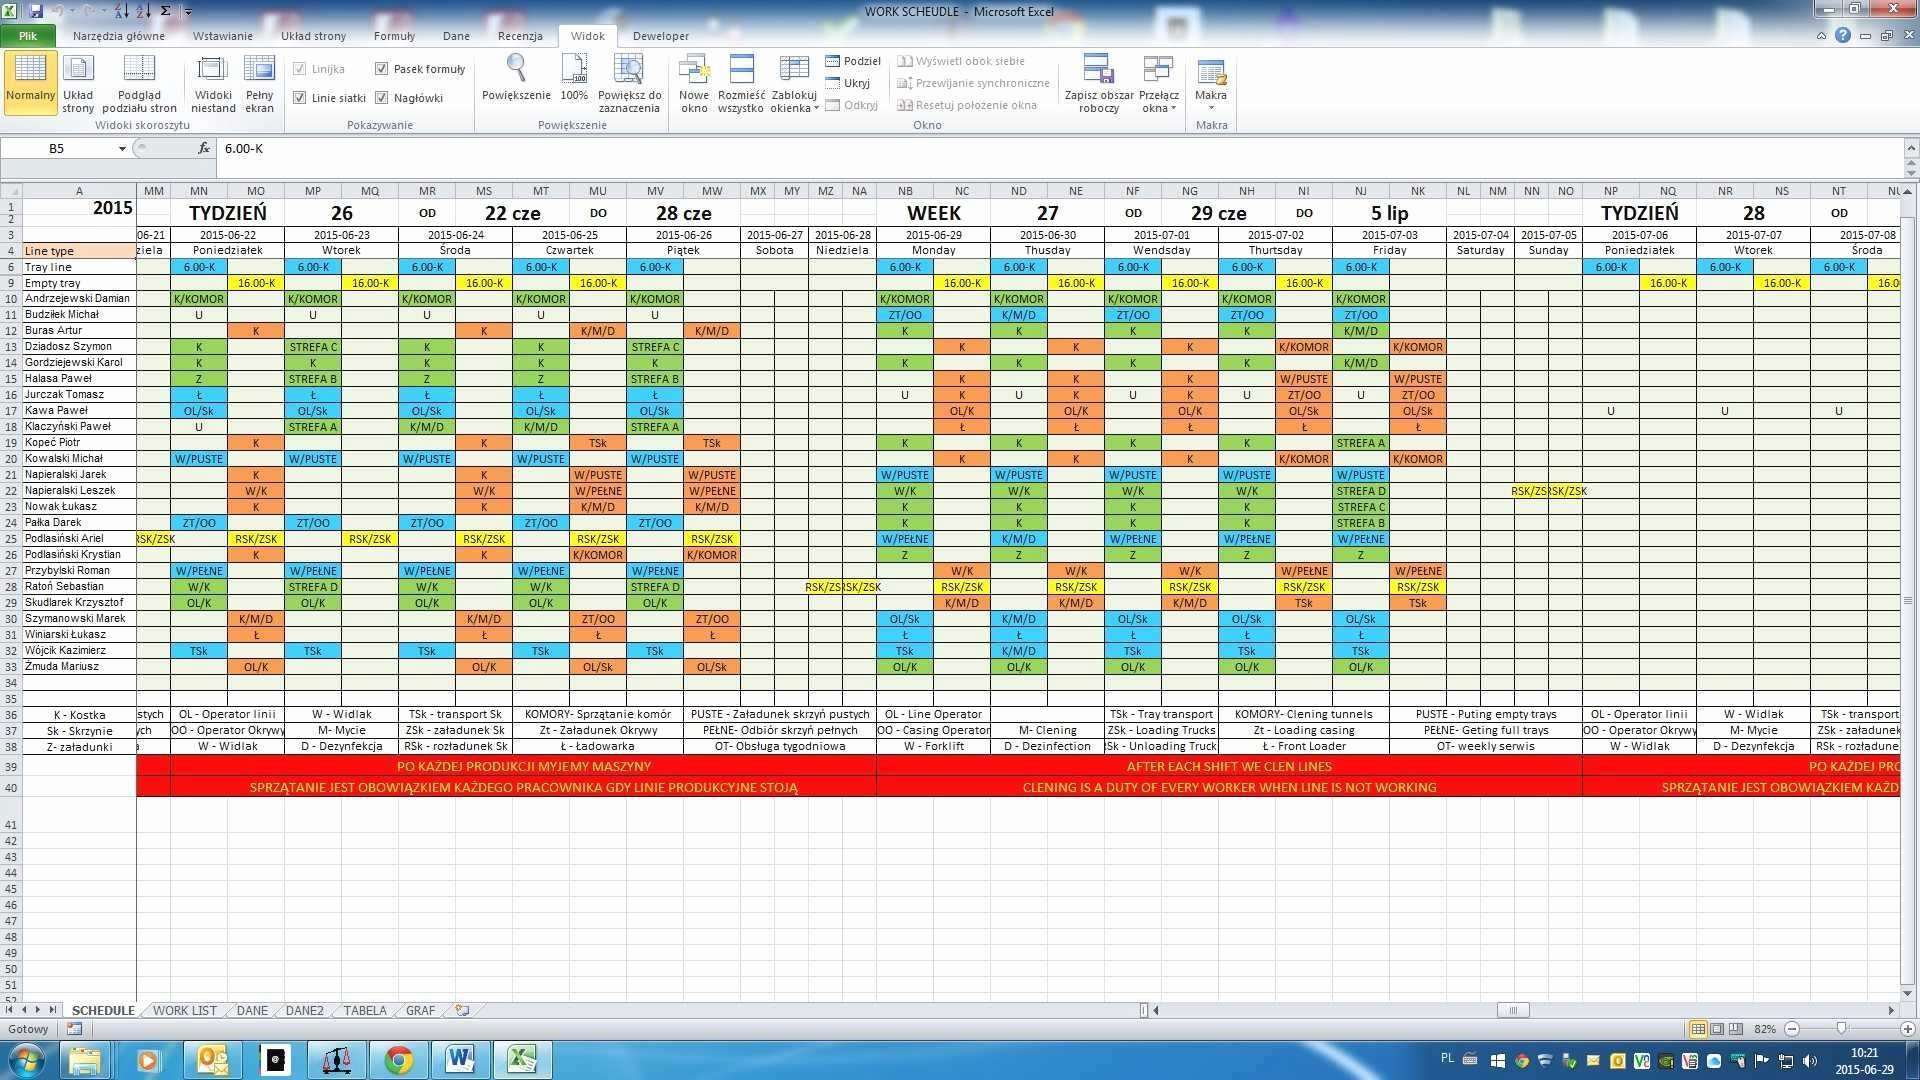 Excel Shift Schedule Template Luxury Awesome Employee Shift Schedule Excel Template Download